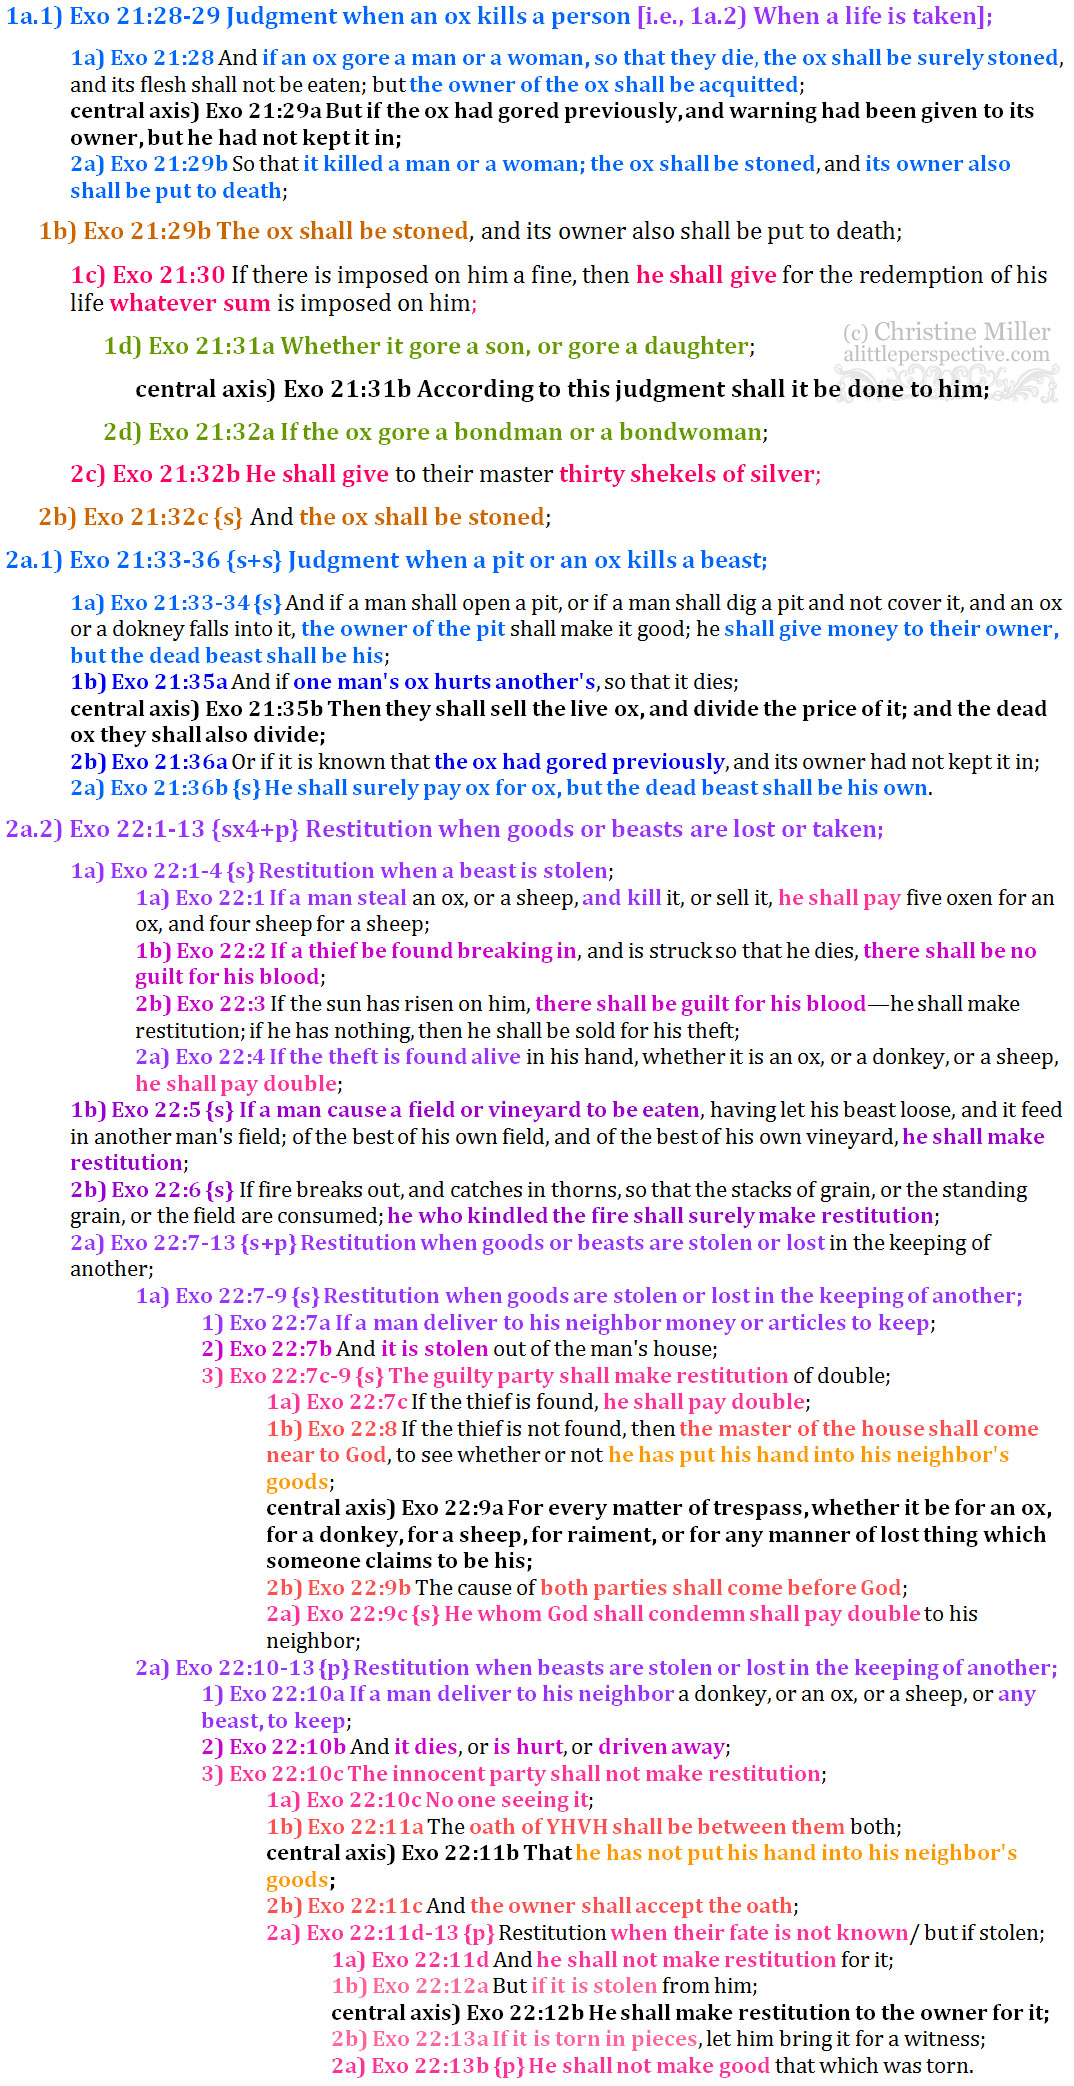 Exo 21:28-22:13 chiasm | christine's bible study at alittleperspective.com